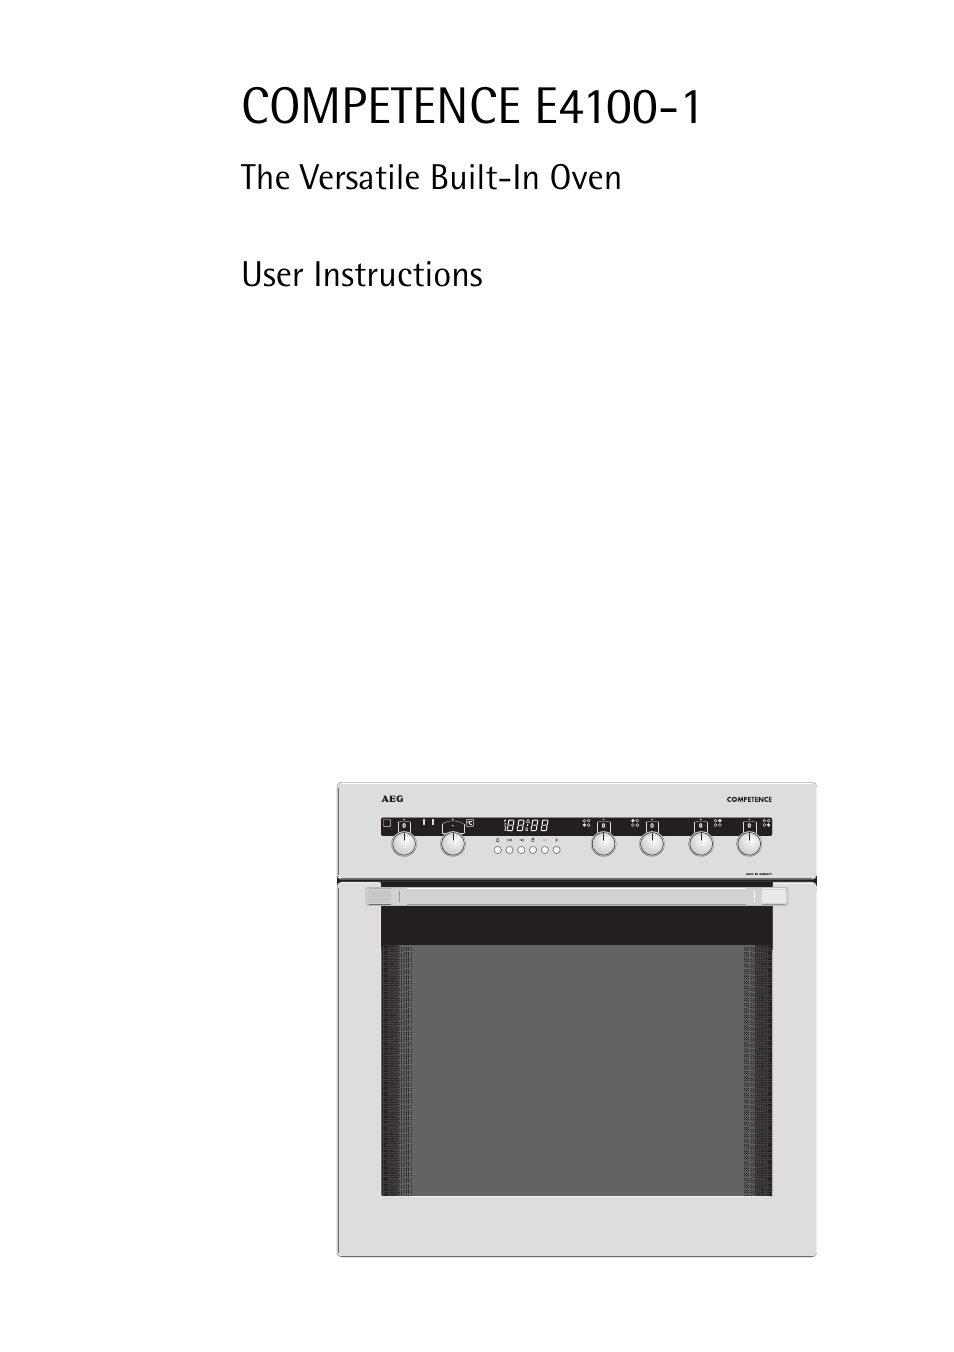 aeg competence e4100 1 user manual 68 pages rh manualsdir com aeg competence oven manual aeg electrolux stove manual